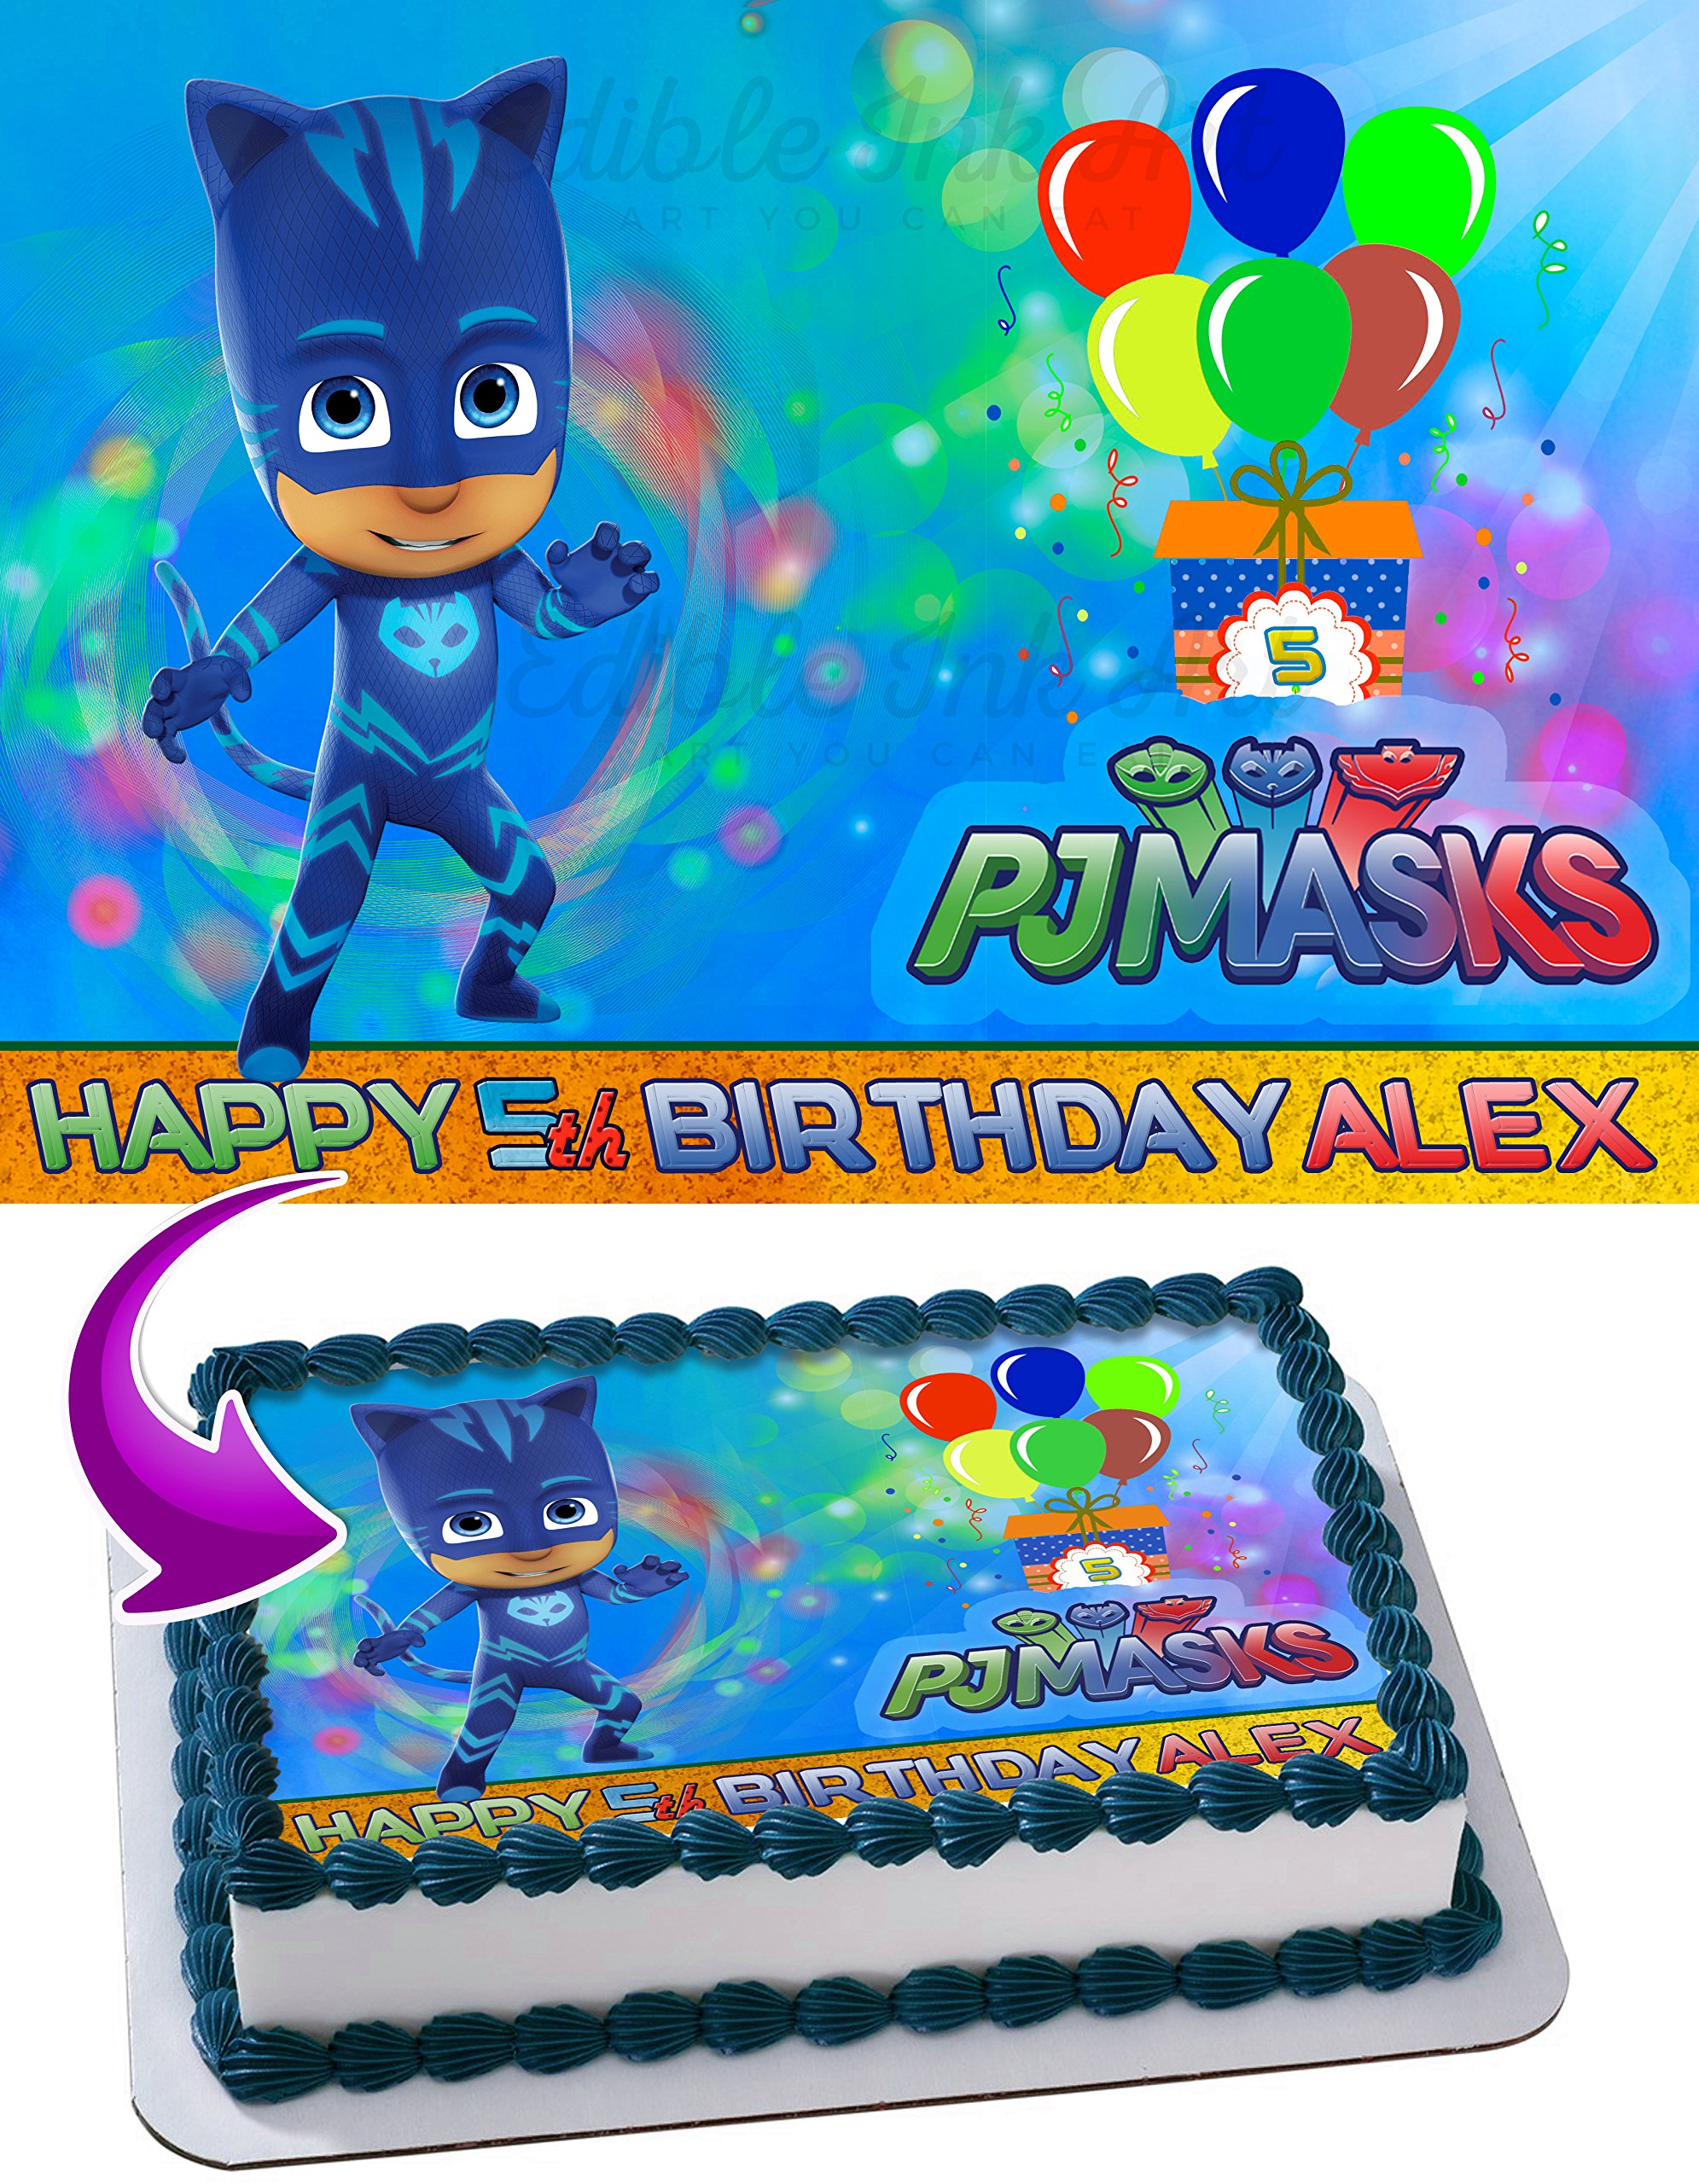 CatBoy PJ MASKS Edible Image Cake Topper Personalized Icing Sugar Paper A4 Sheet Edible Frosting Photo Cake 1/4 ~ Best Quality Edible Image for cake